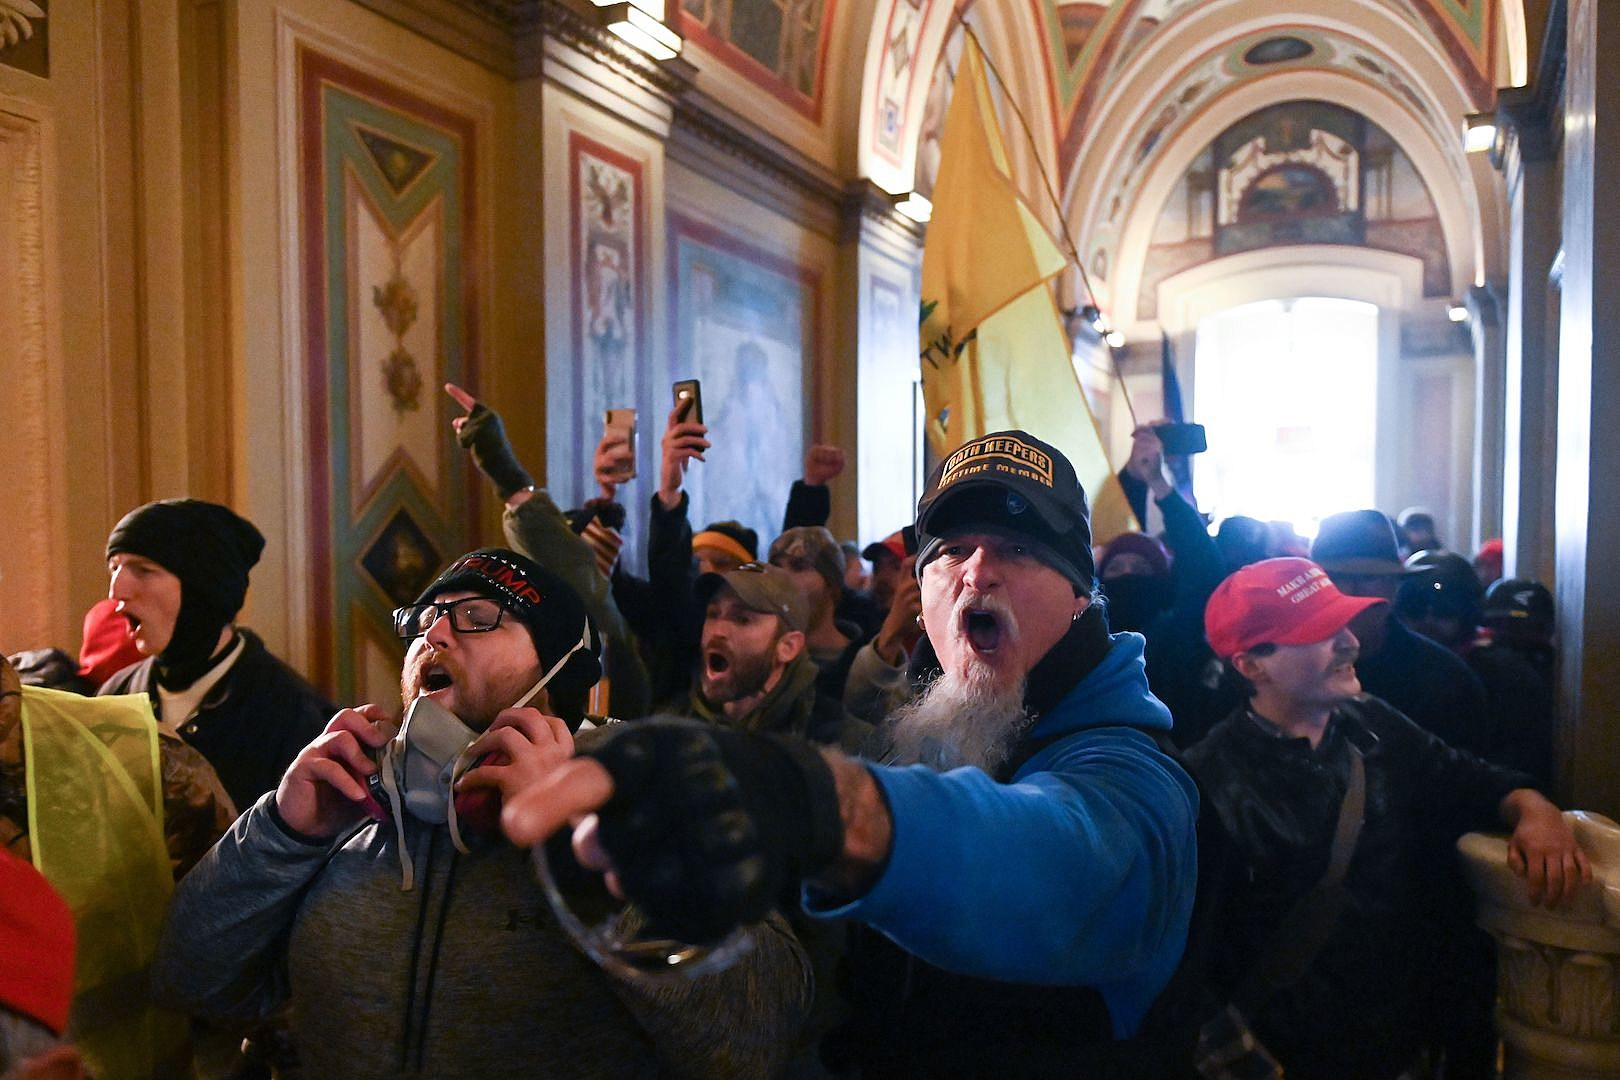 Report: Schaffer Wore Hat of Militia Who Planned Capitol Attack